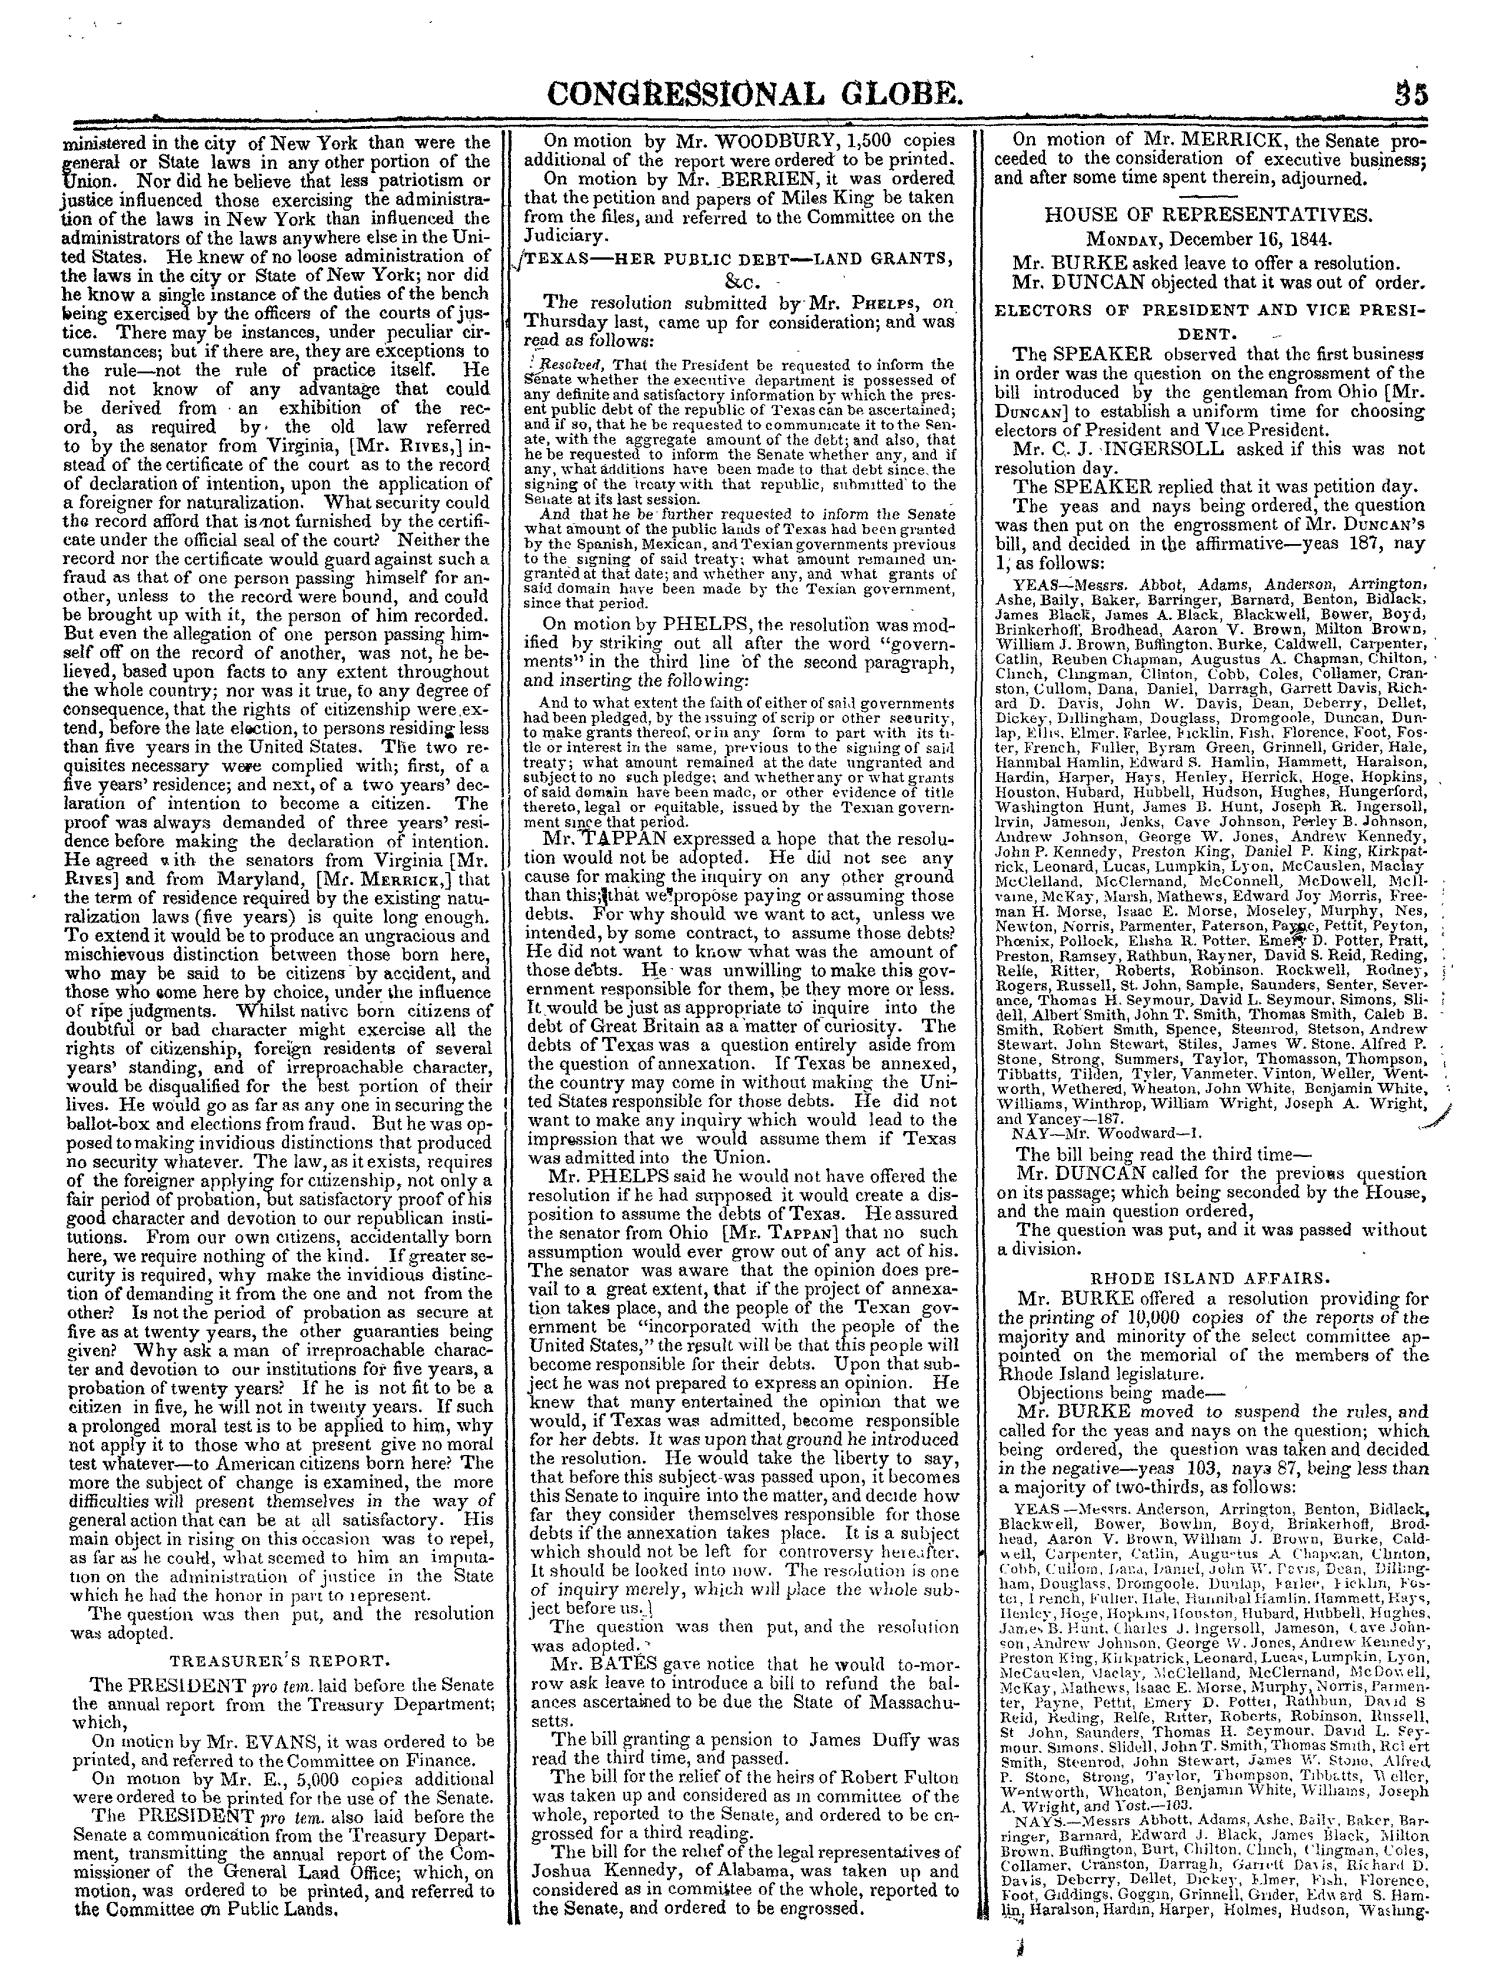 The Congressional Globe, Volume 14: Twenty-Eighth Congress, Second Session                                                                                                      35